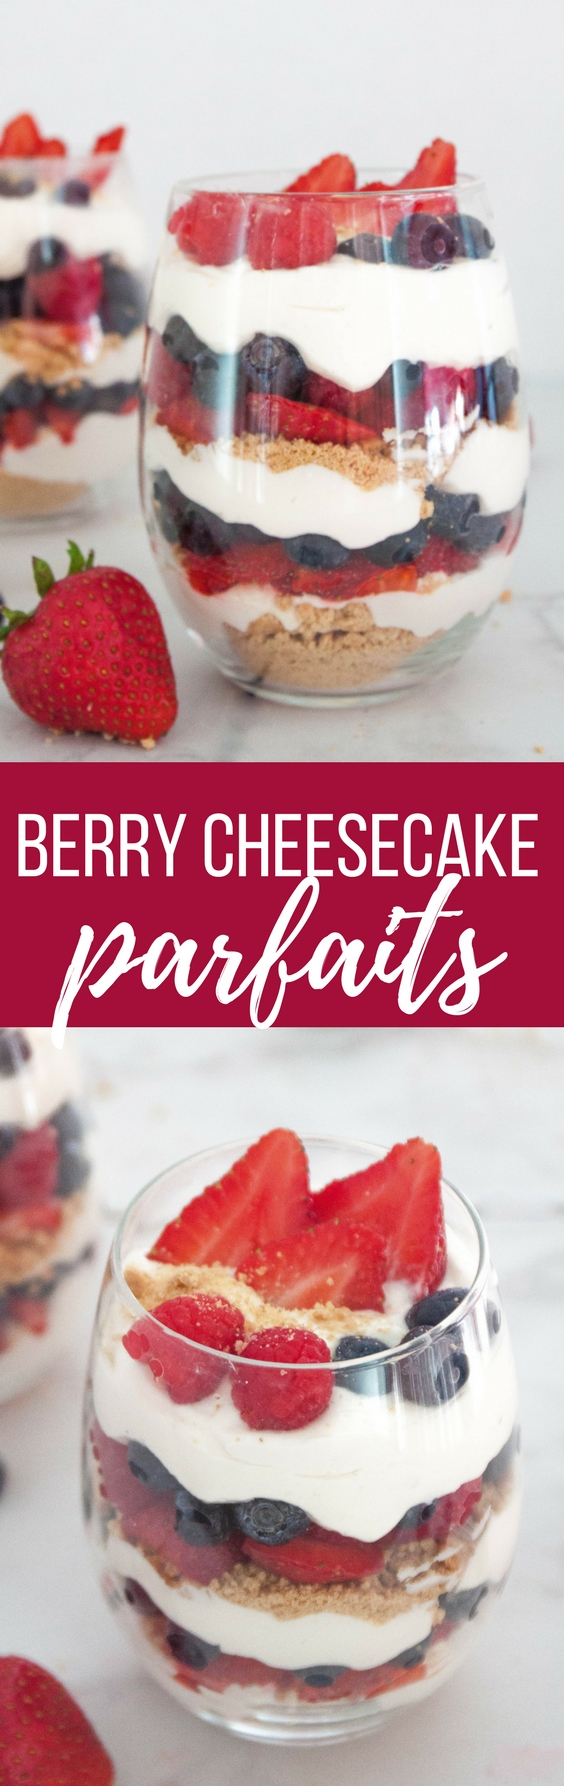 Berry Cheesecake Parfaits are an easy, no-bake dessert perfect for summer. Guaranteed to be the star of the show at your 4th of July party or any festivity!